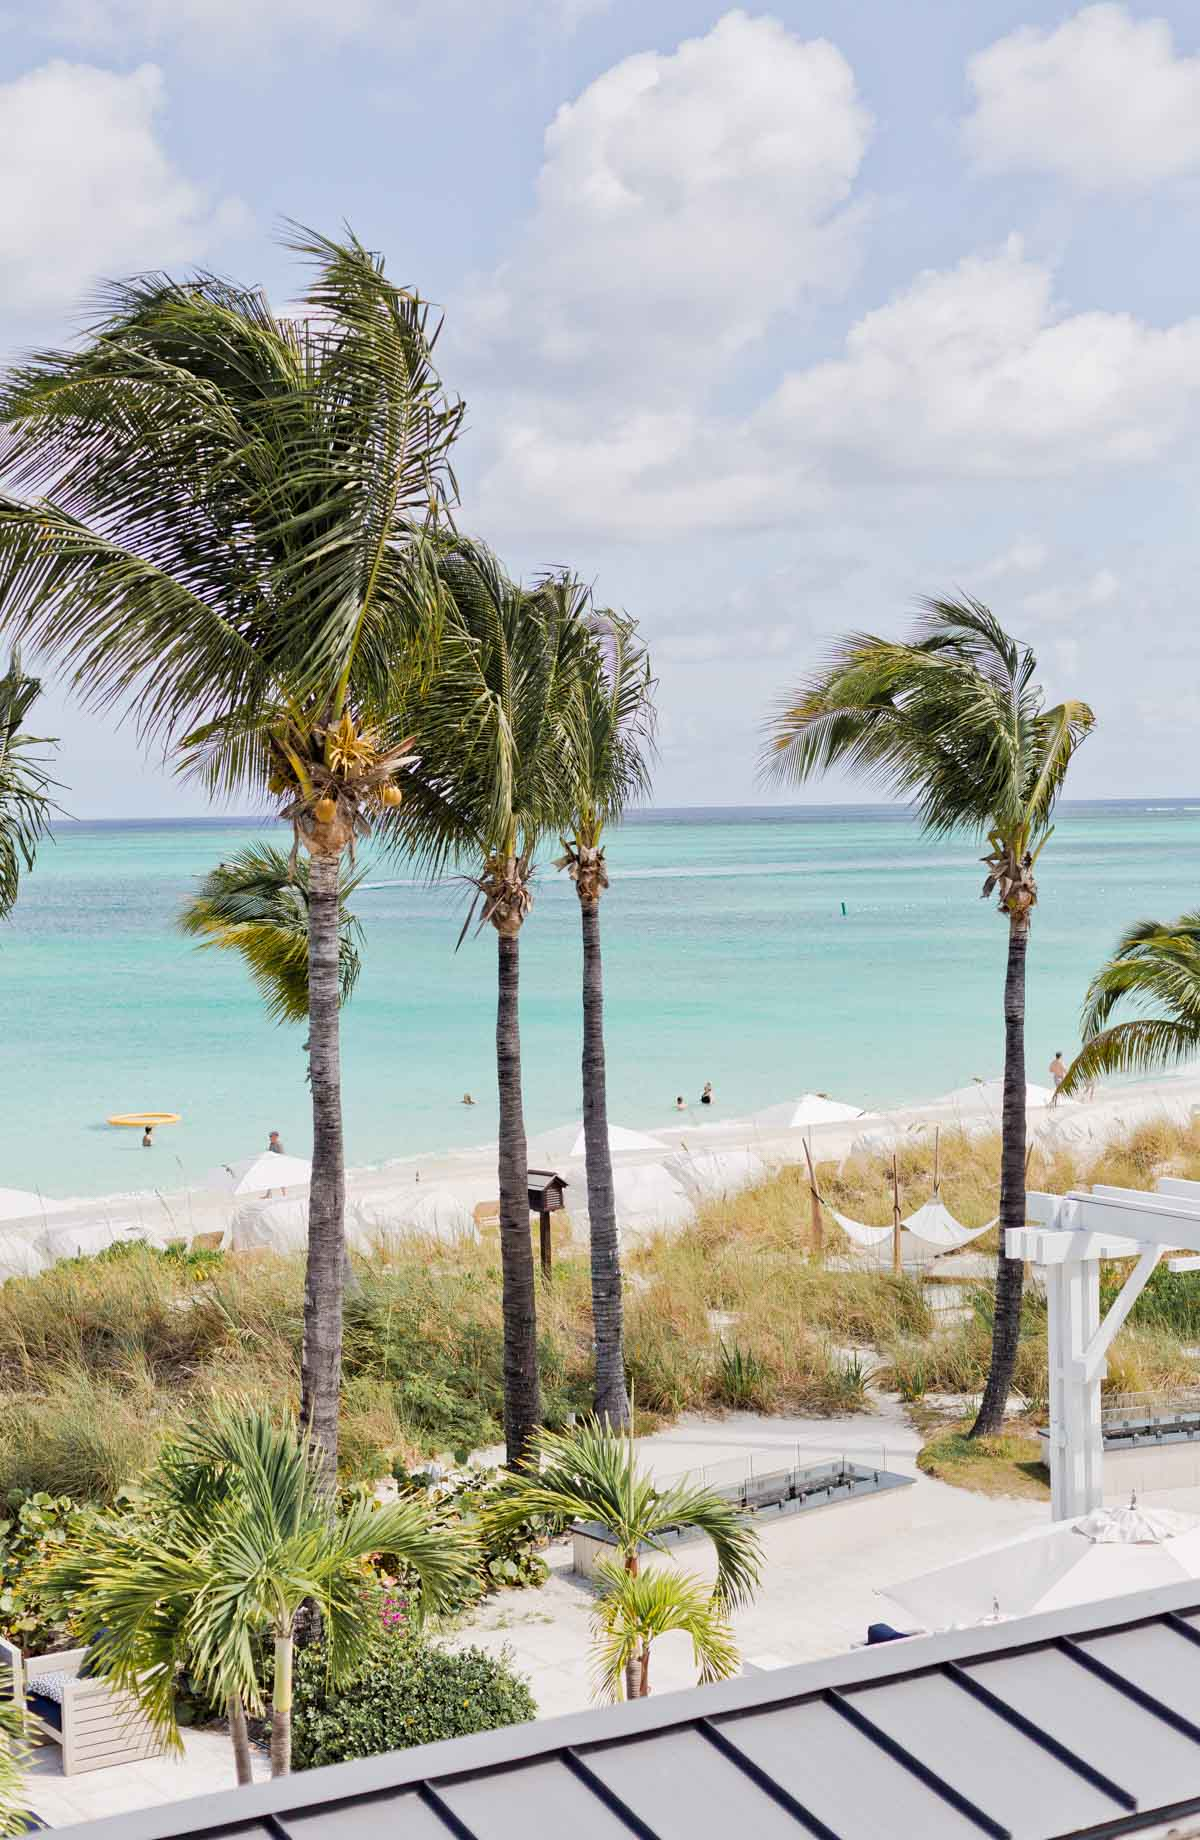 Oh Baby! A Tropical Vacation to Turks and Caicos with a Baby (at Beaches Turks and Caicos) #turksandcaicos #beachesresort #allinclusiveresort #beachvacation